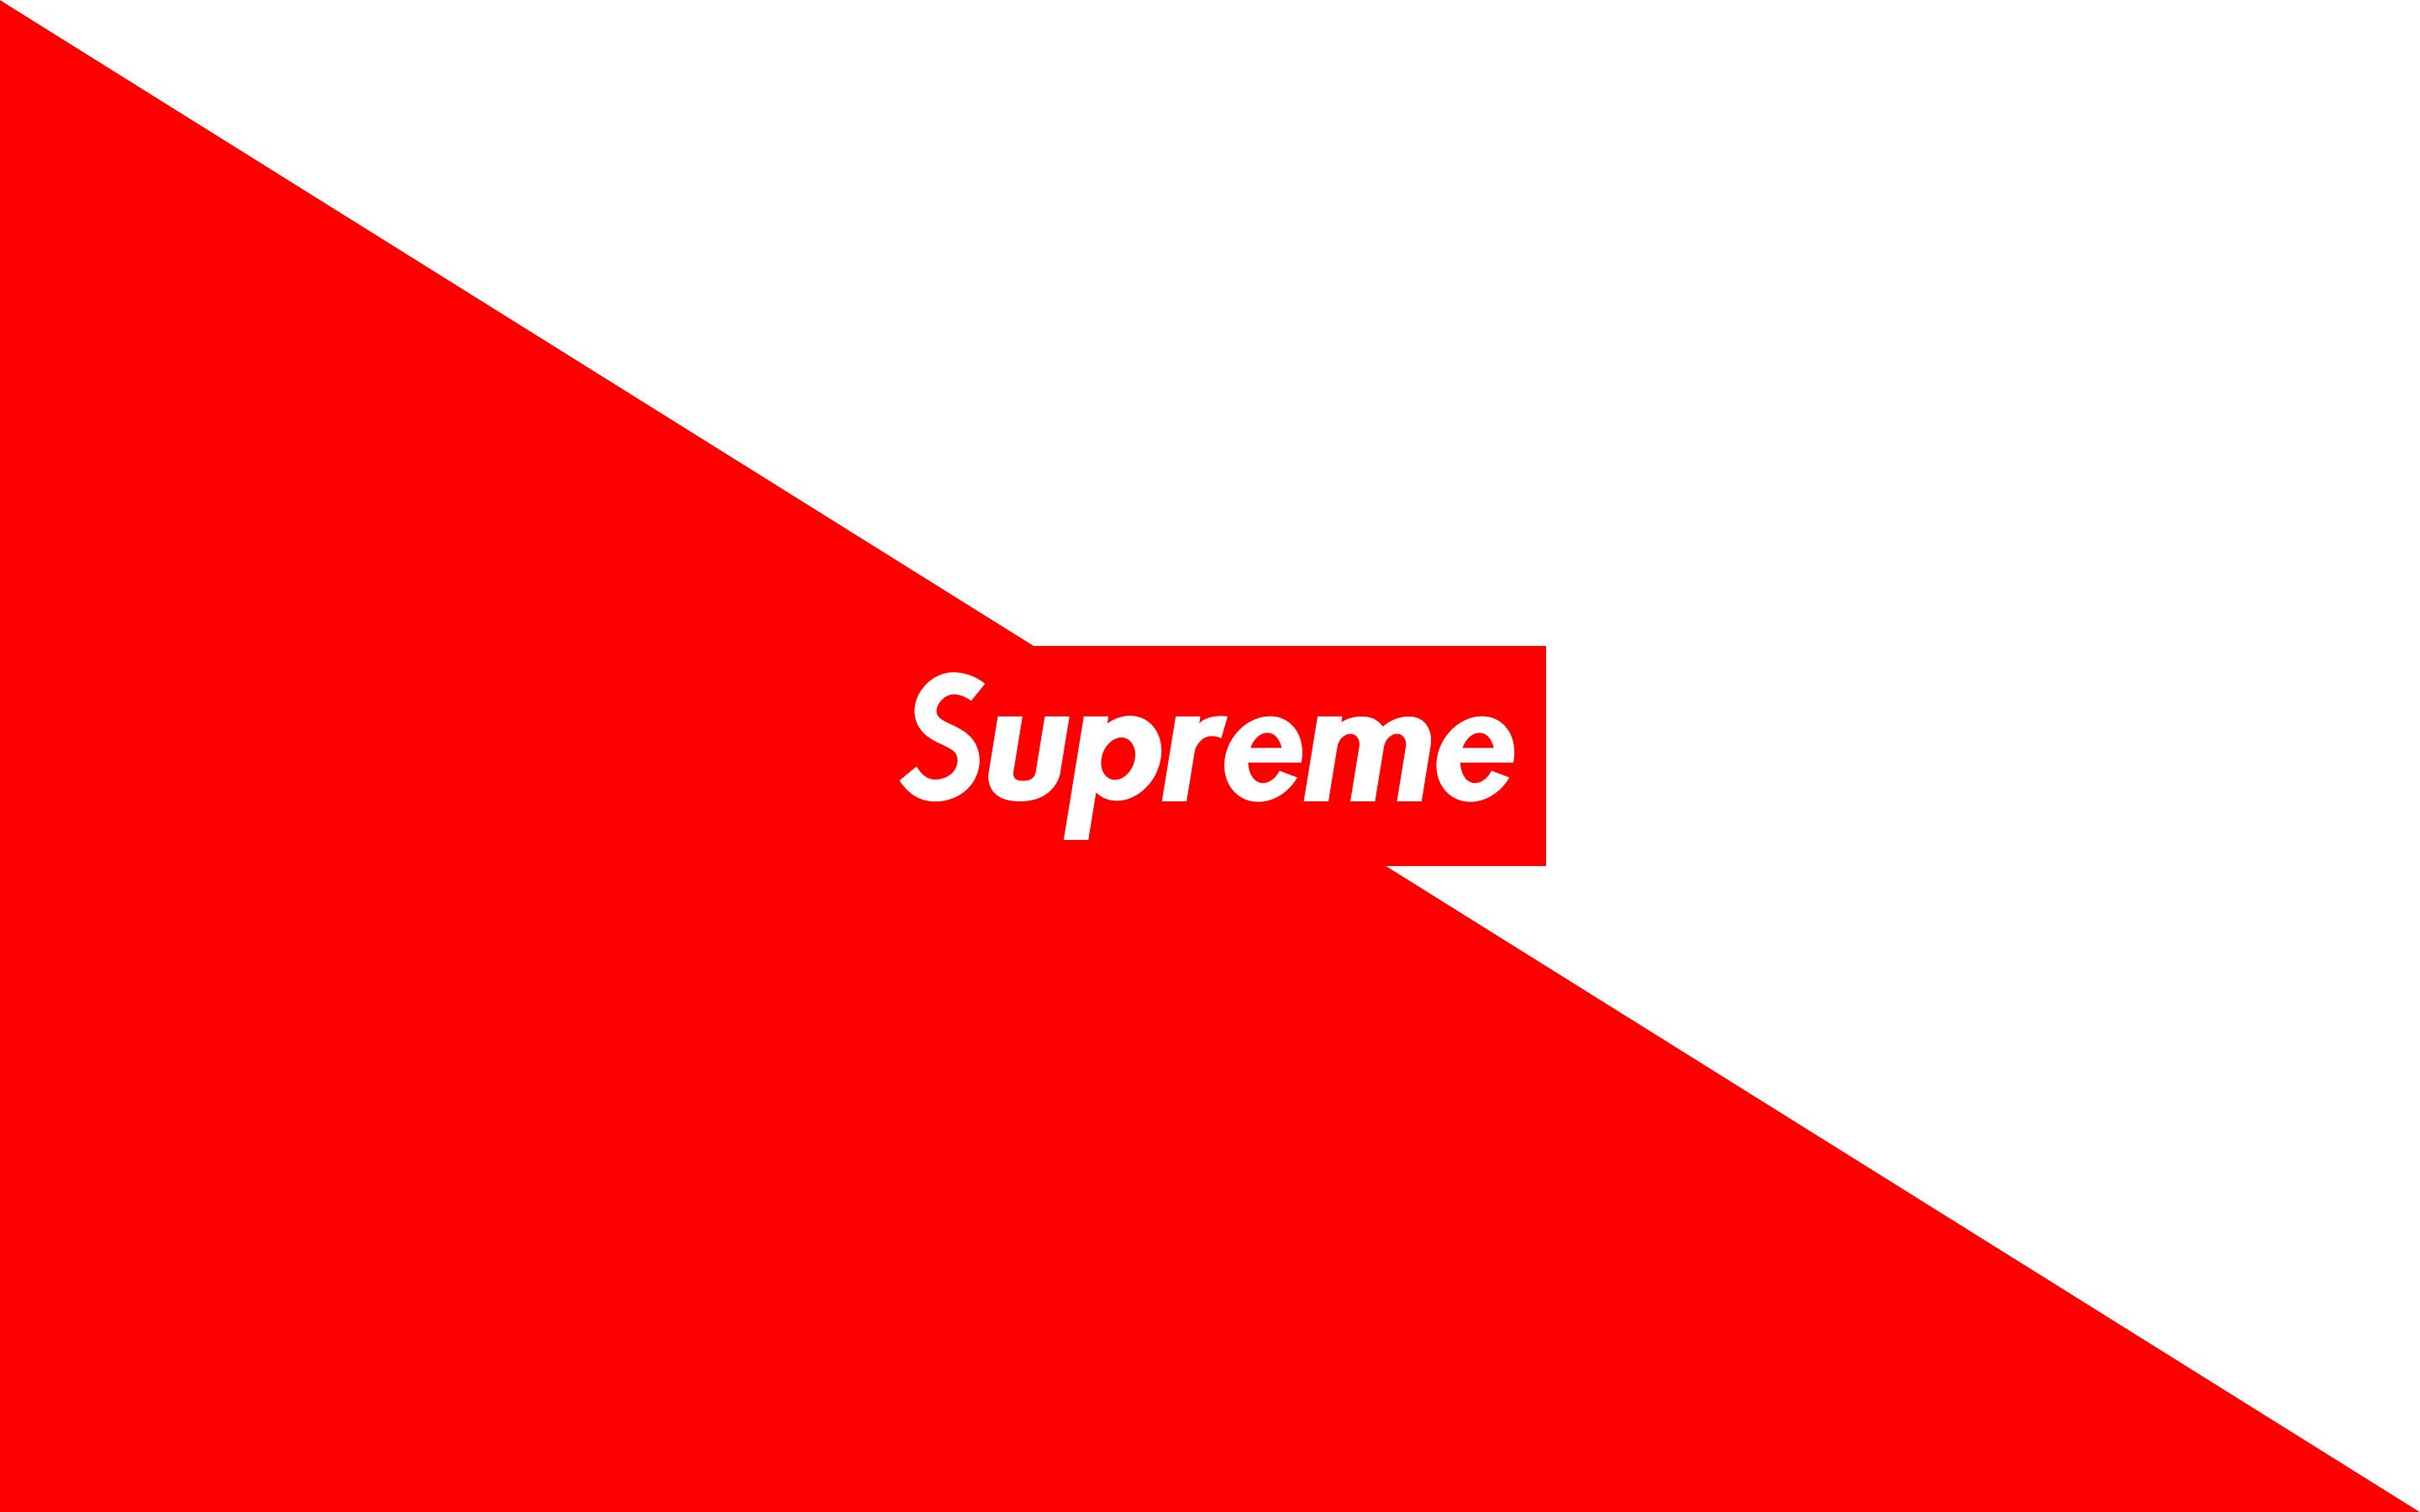 Gucci Supreme Computer Wallpapers Top Free Gucci Supreme